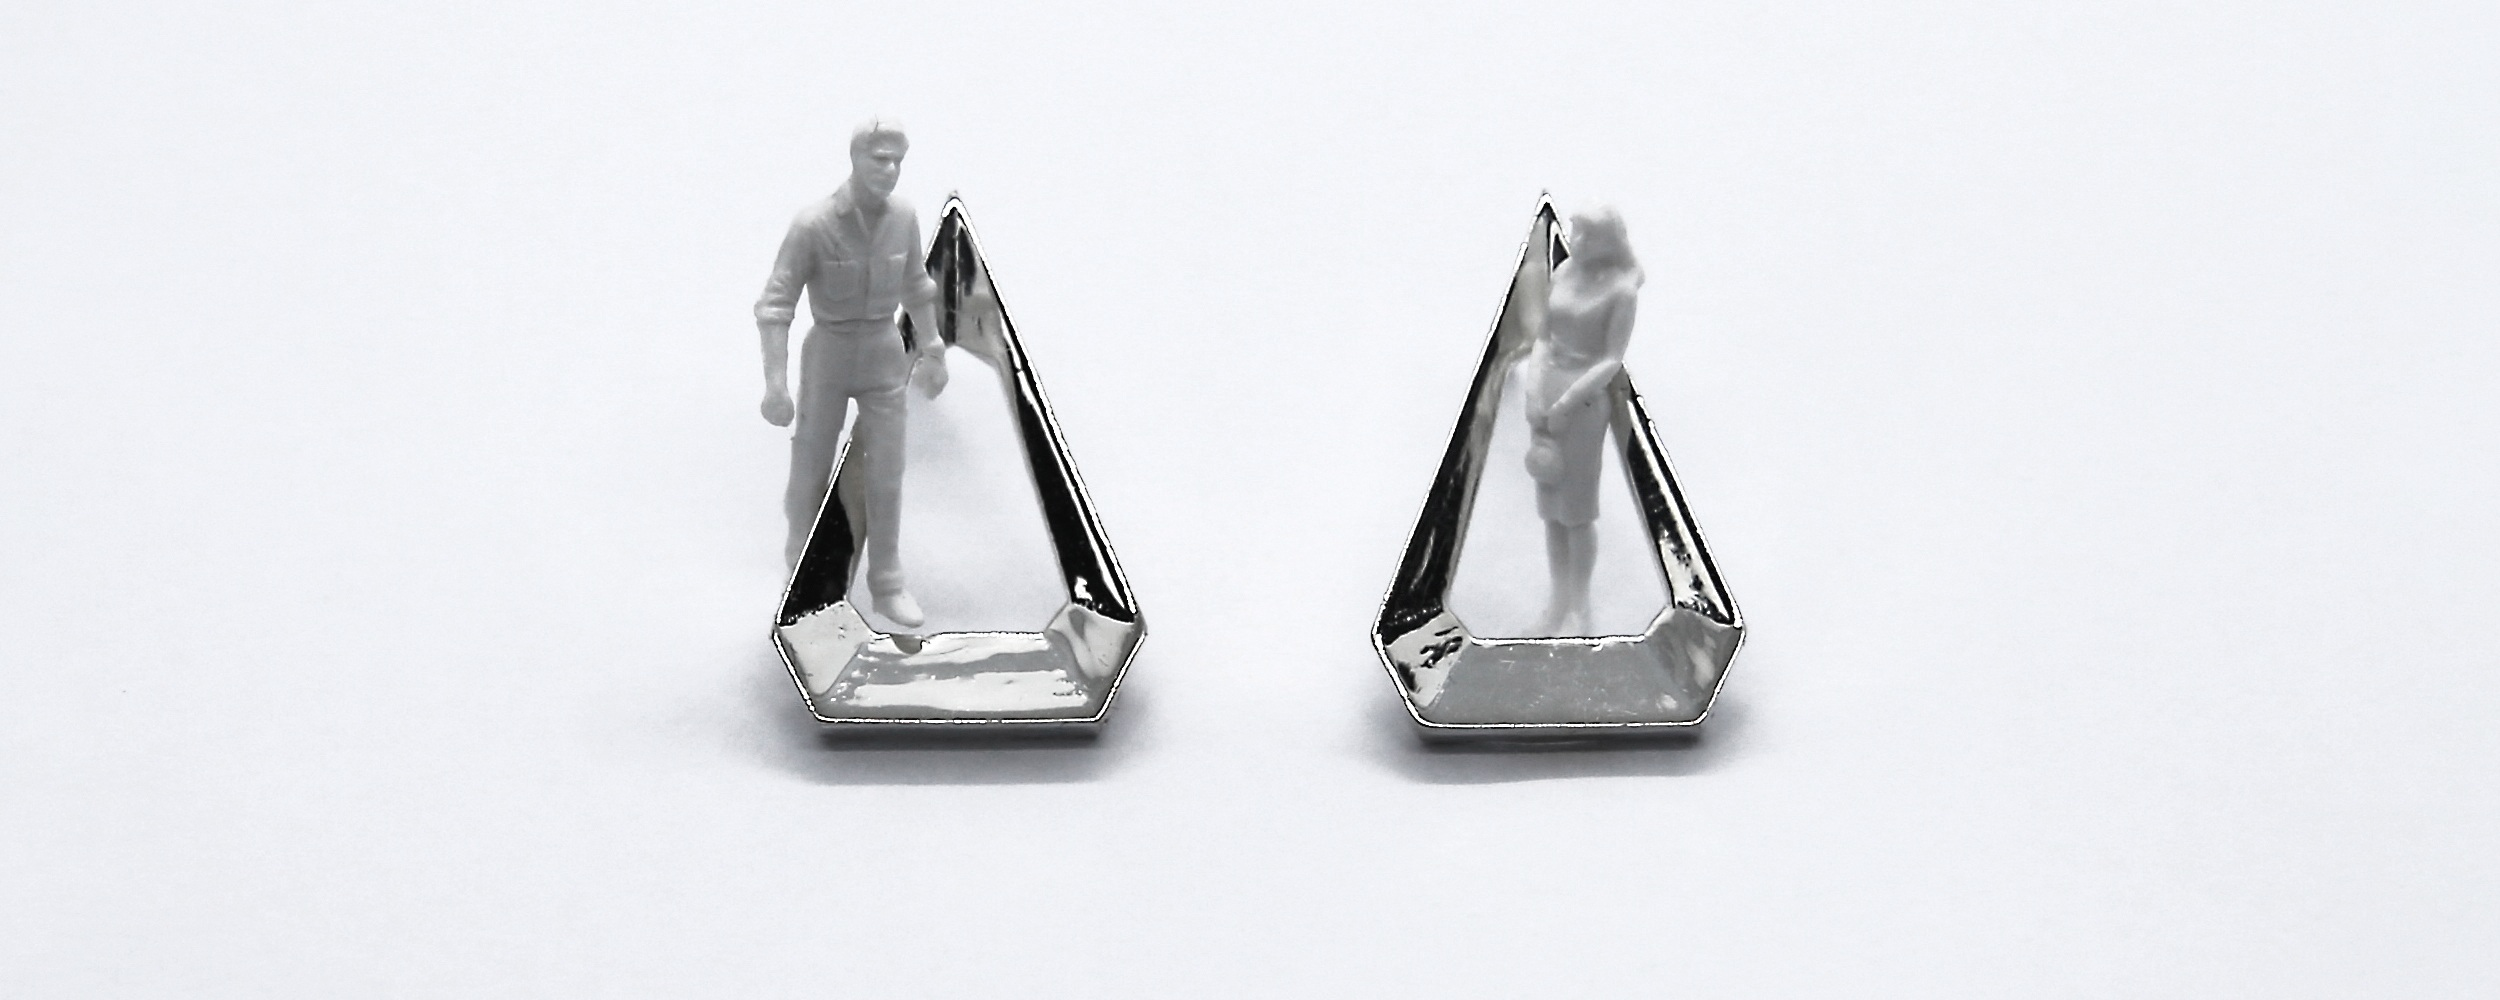 Image features large Welbeck car park inspired diamond studs in sterling silver.